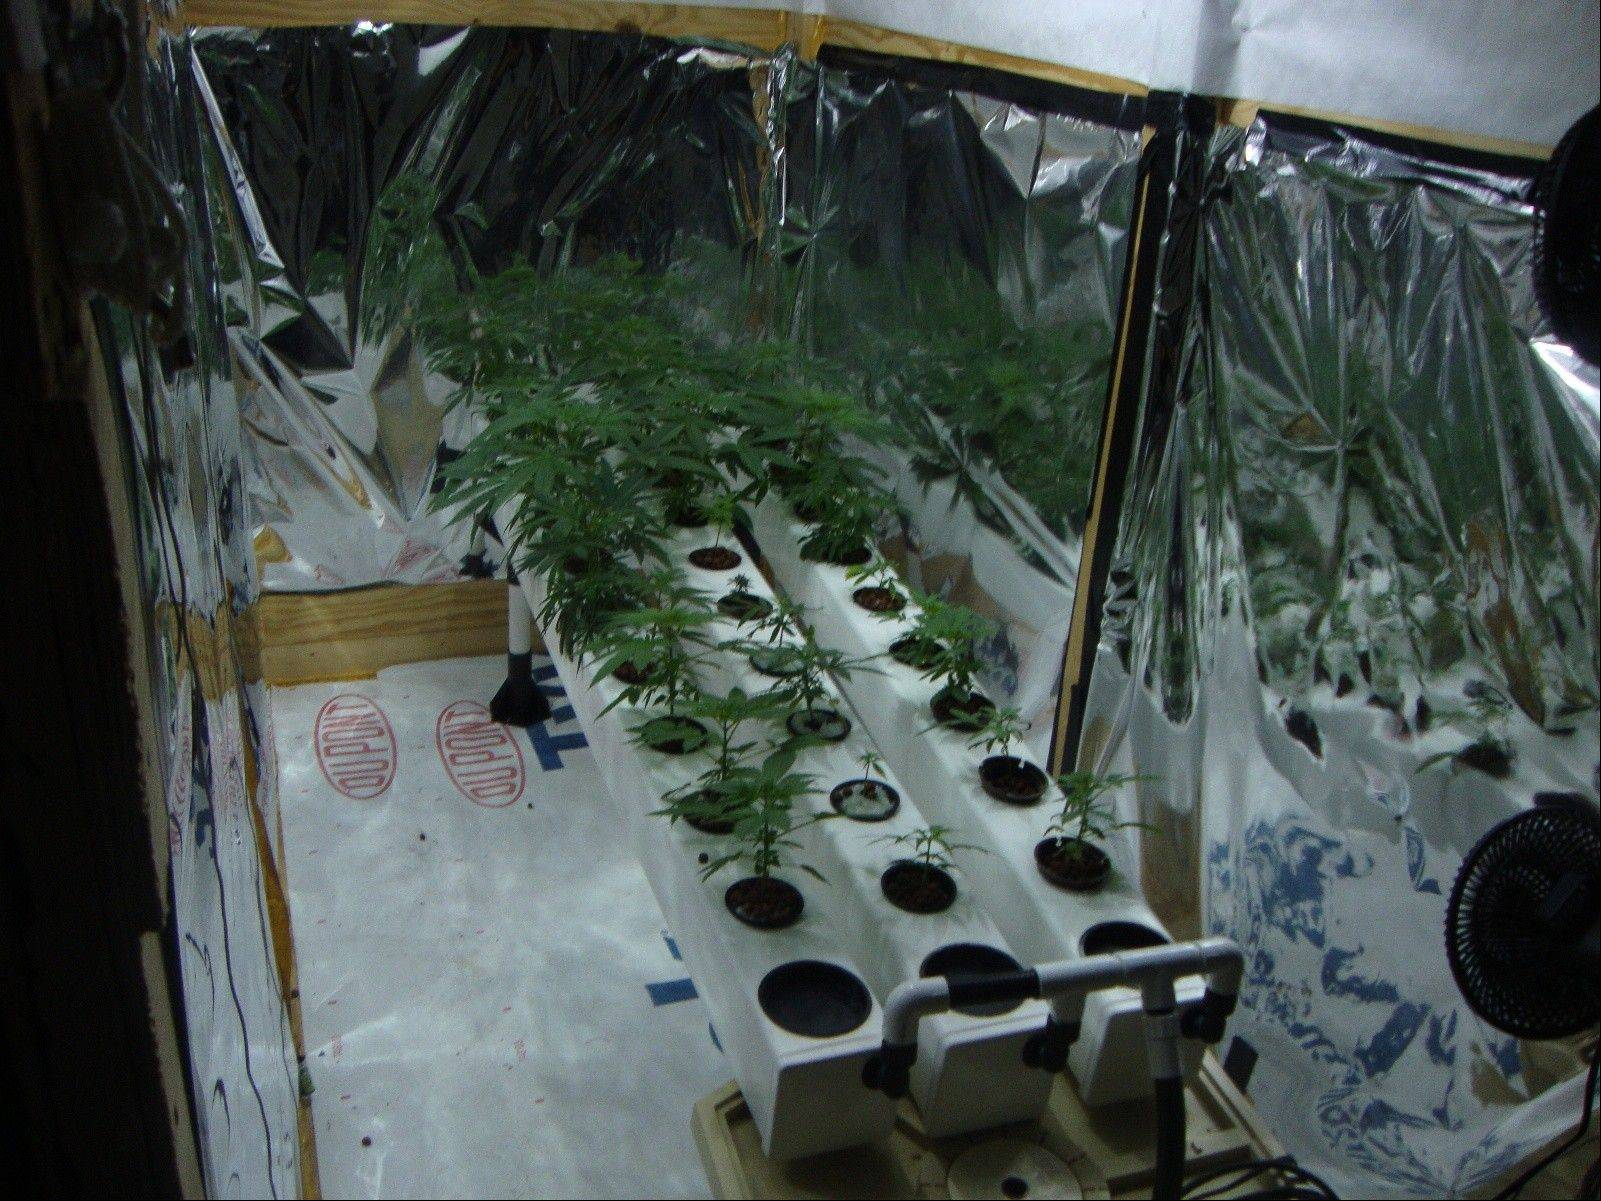 Marijuana was being grown inside this home in Glenview, Cook County sheriff's police said.